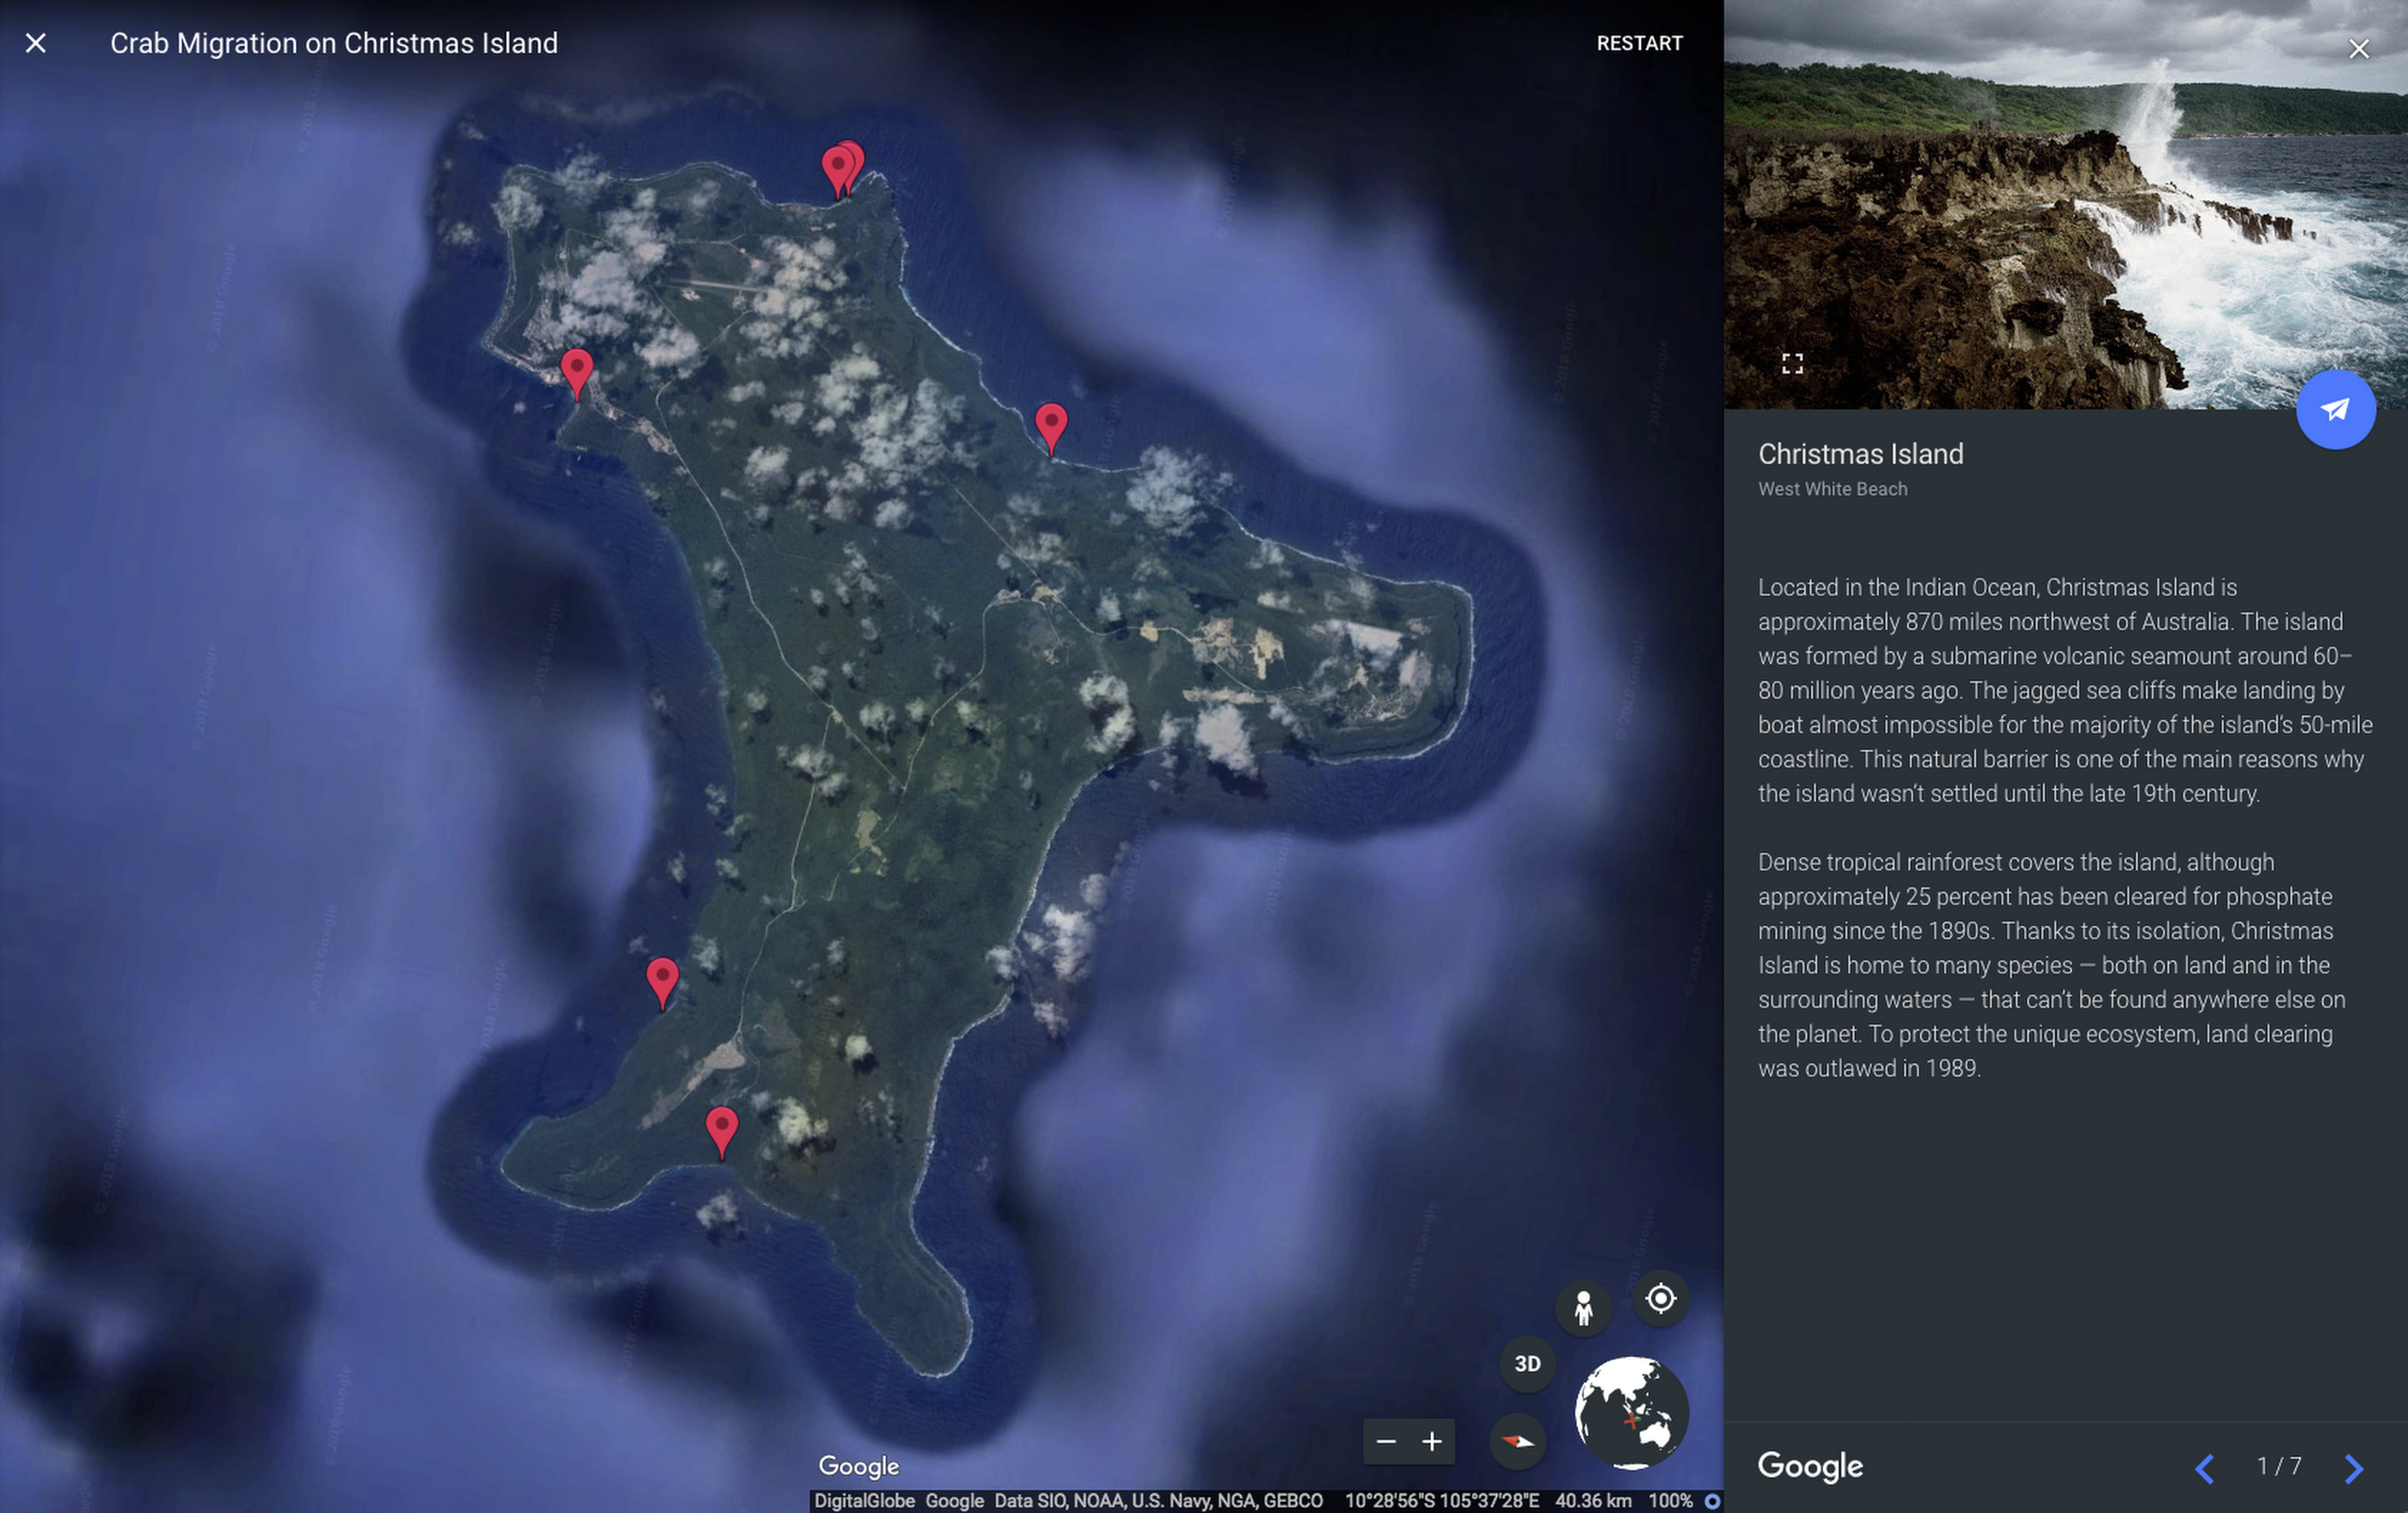 Shellebrating Christmas Island's extraordinary nature with Street View and Google Earth